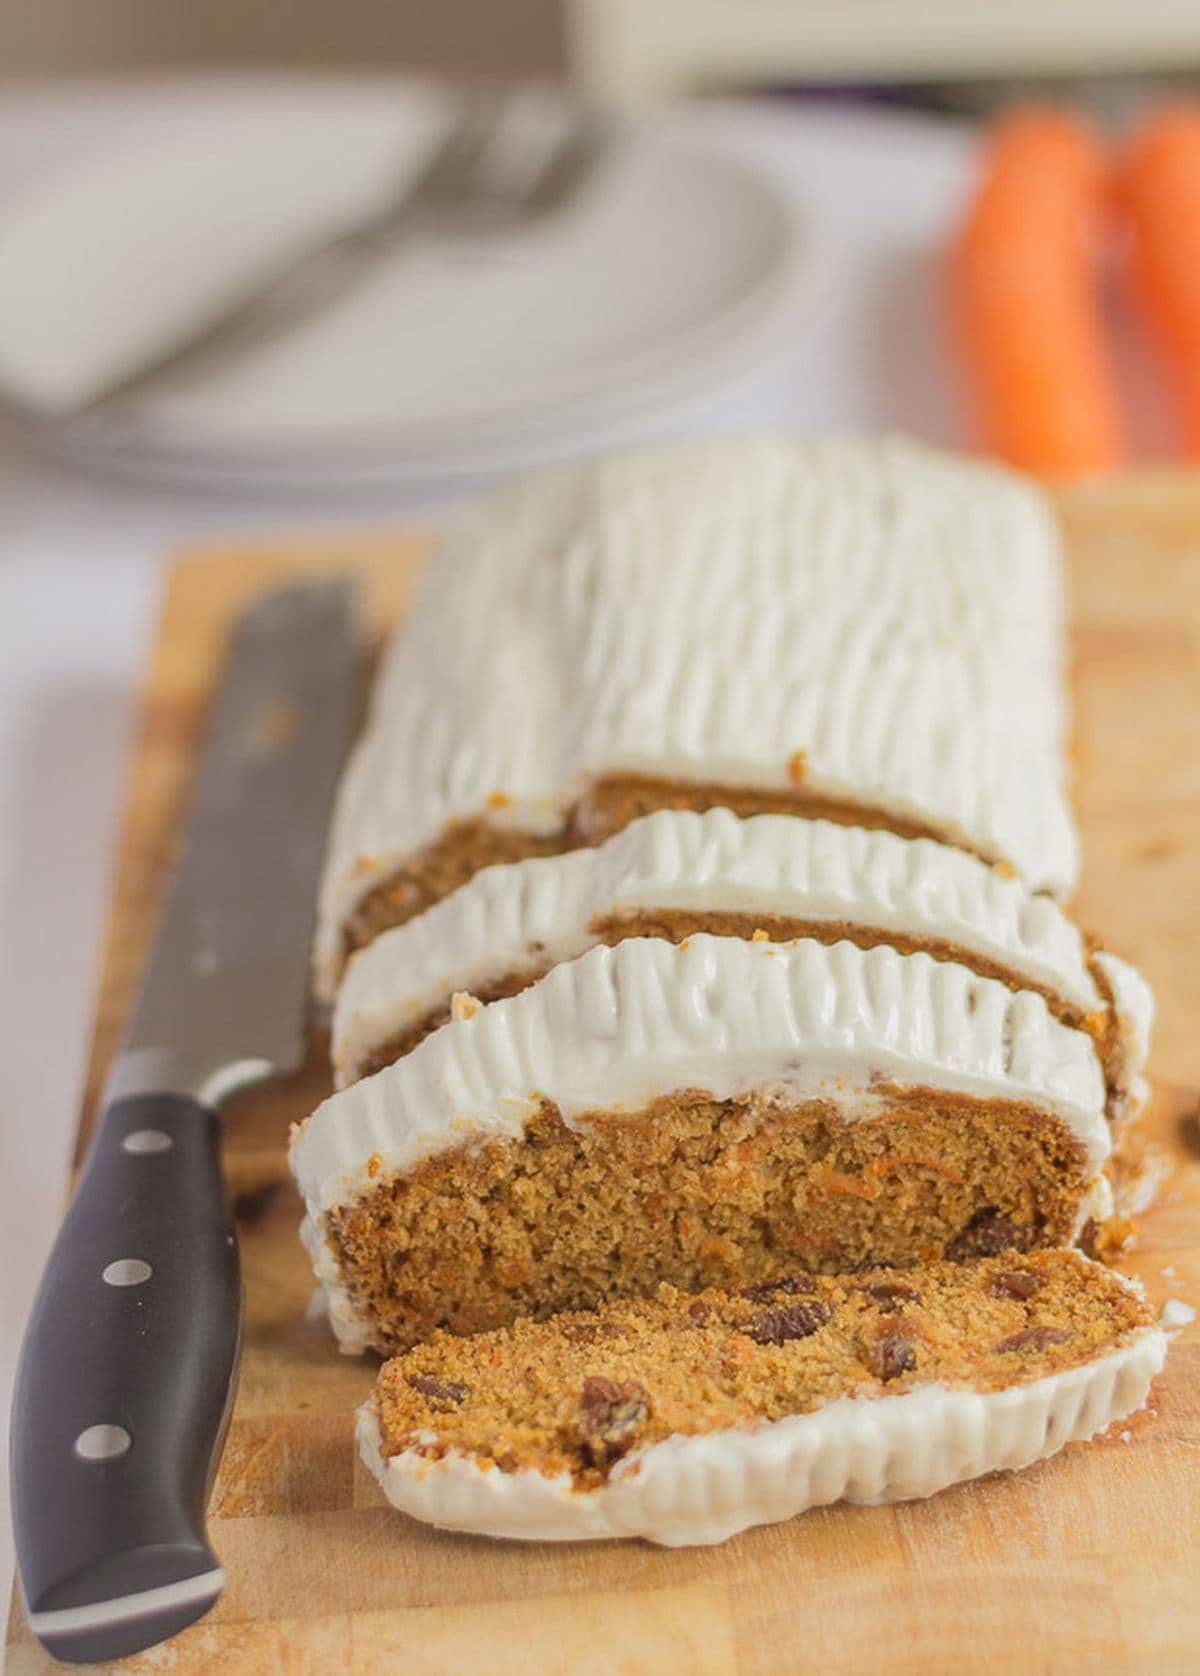 Gluten free carrot and sultata cake on a chopping board. Three slices cut off with a carving knife to the right.